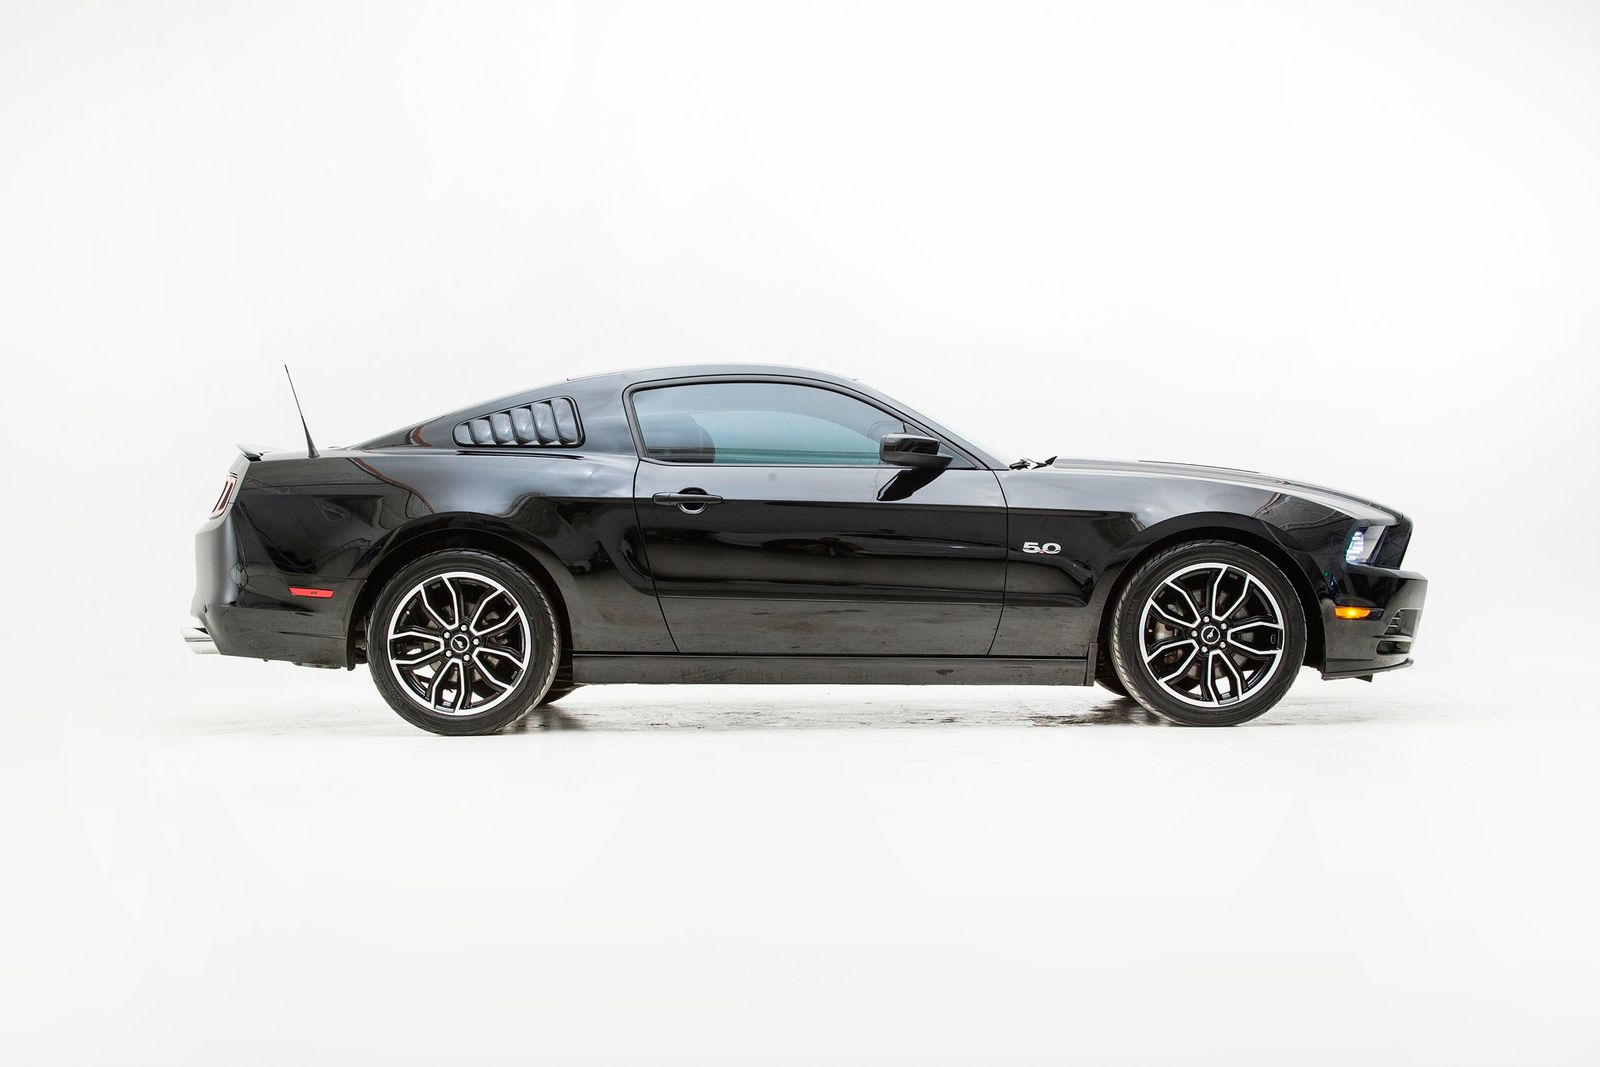 Used 2013 Black Ford Mustang  GT Premium Photo 6